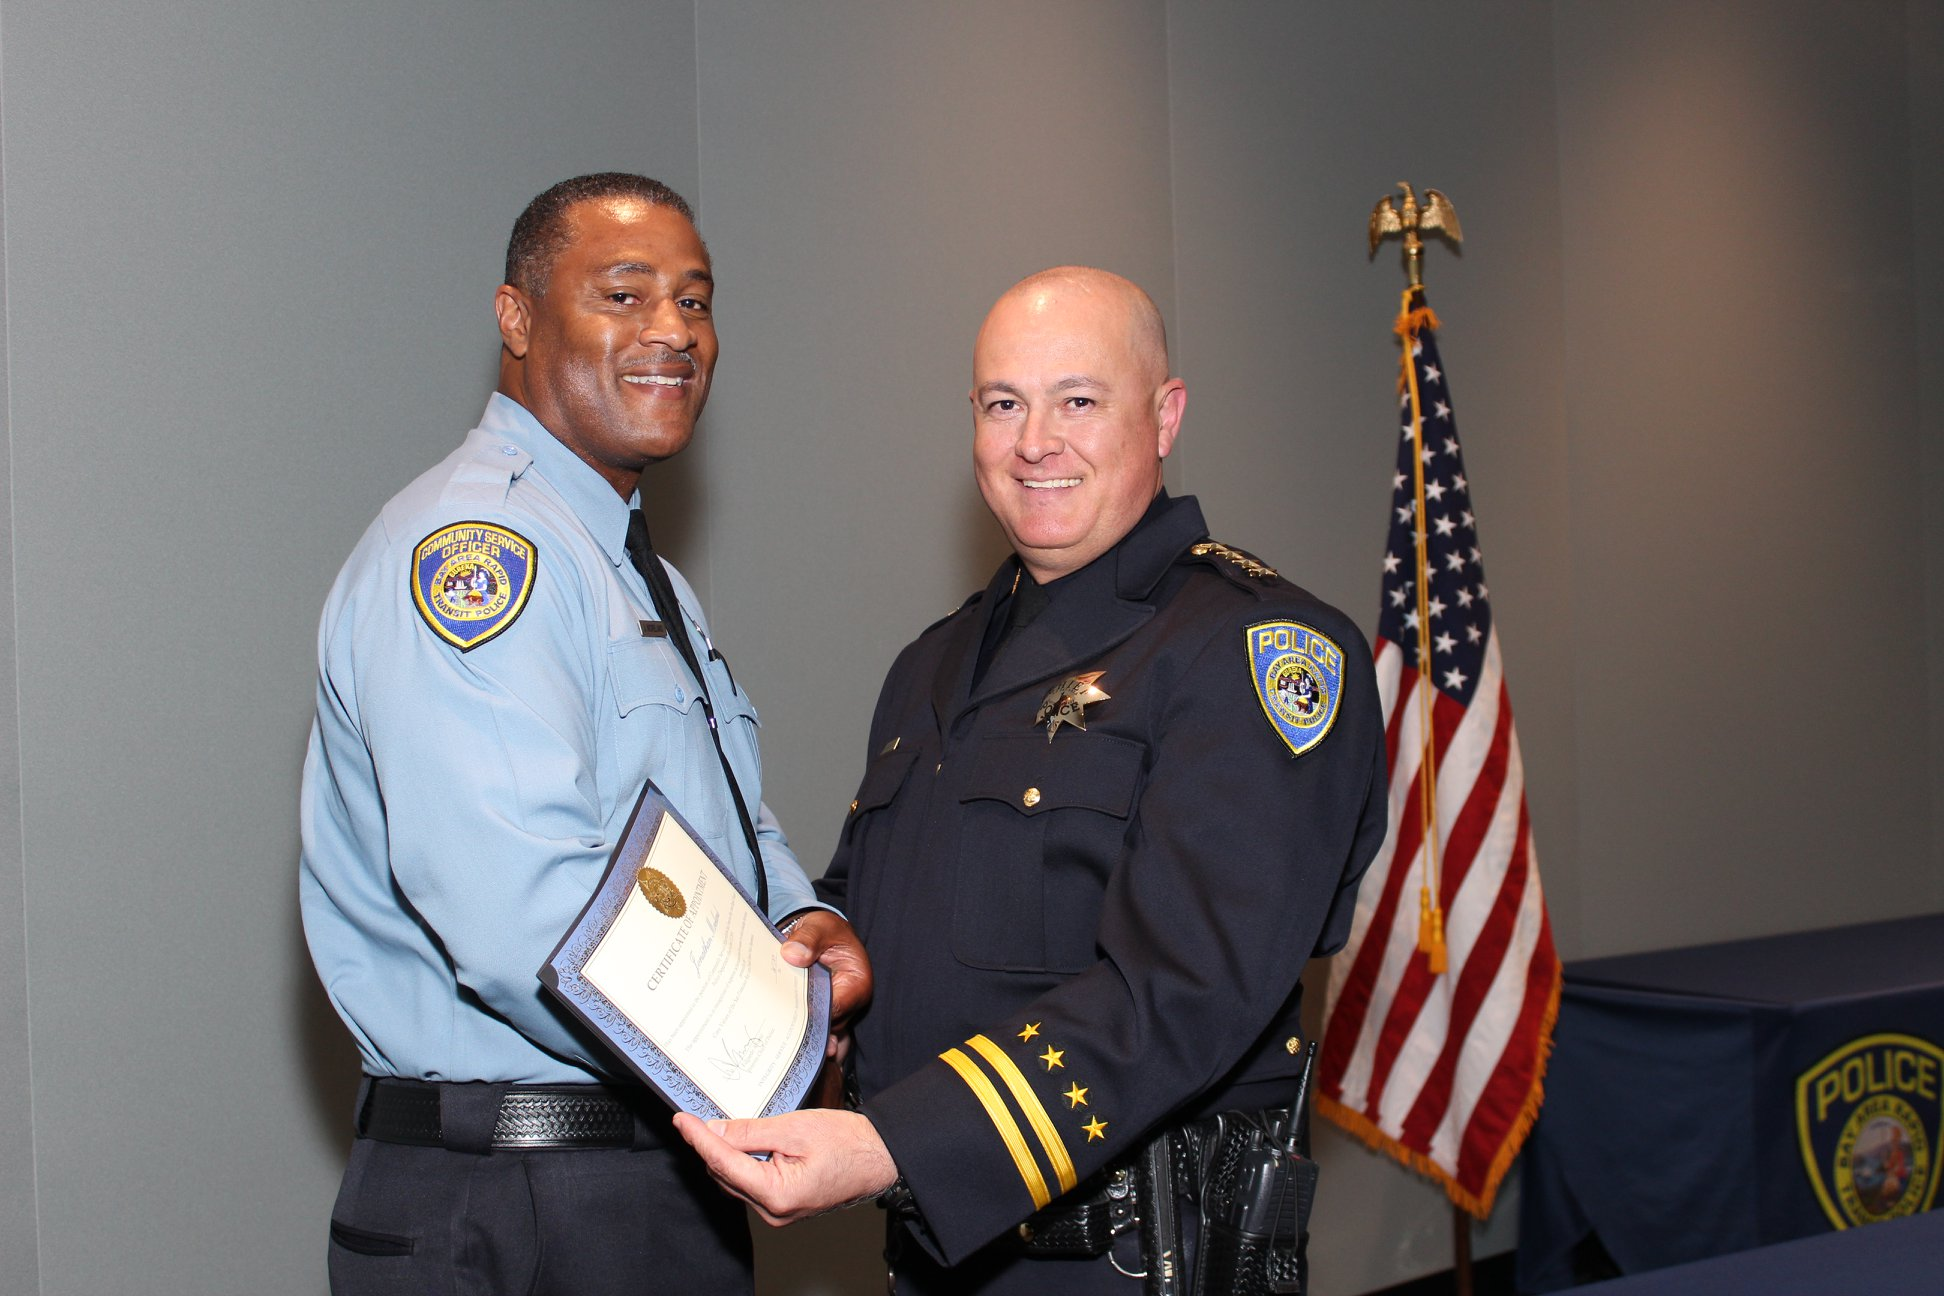 Interim Chief Ed Alvarez poses with sworn-in Community Service Officer